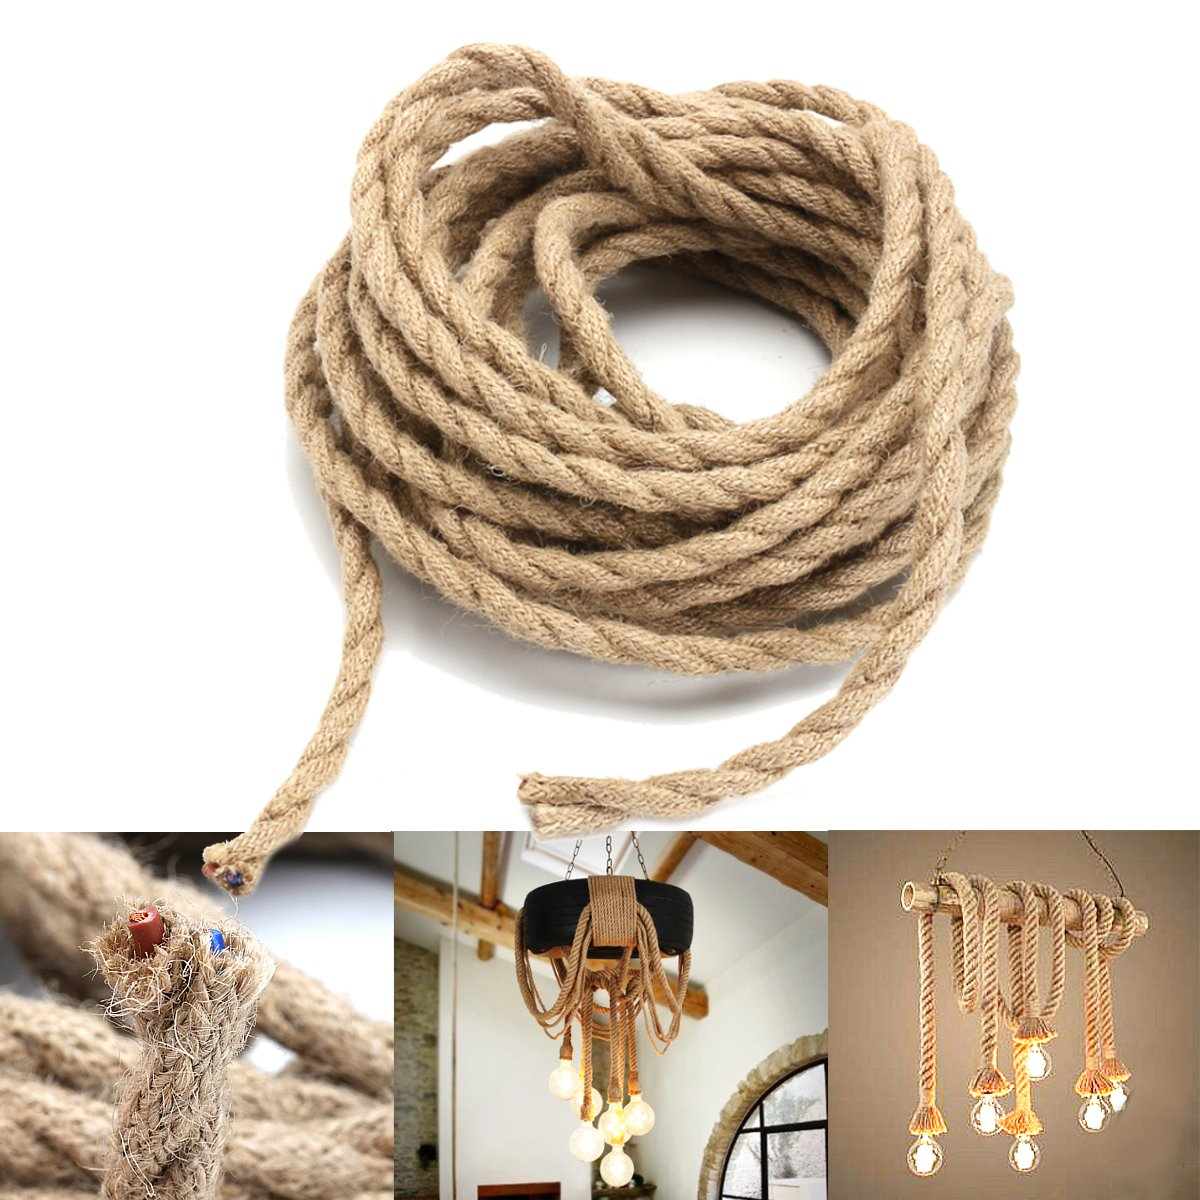 Other Tools New 10m 2x0 75mm Hemp Rope Power Cable Wire